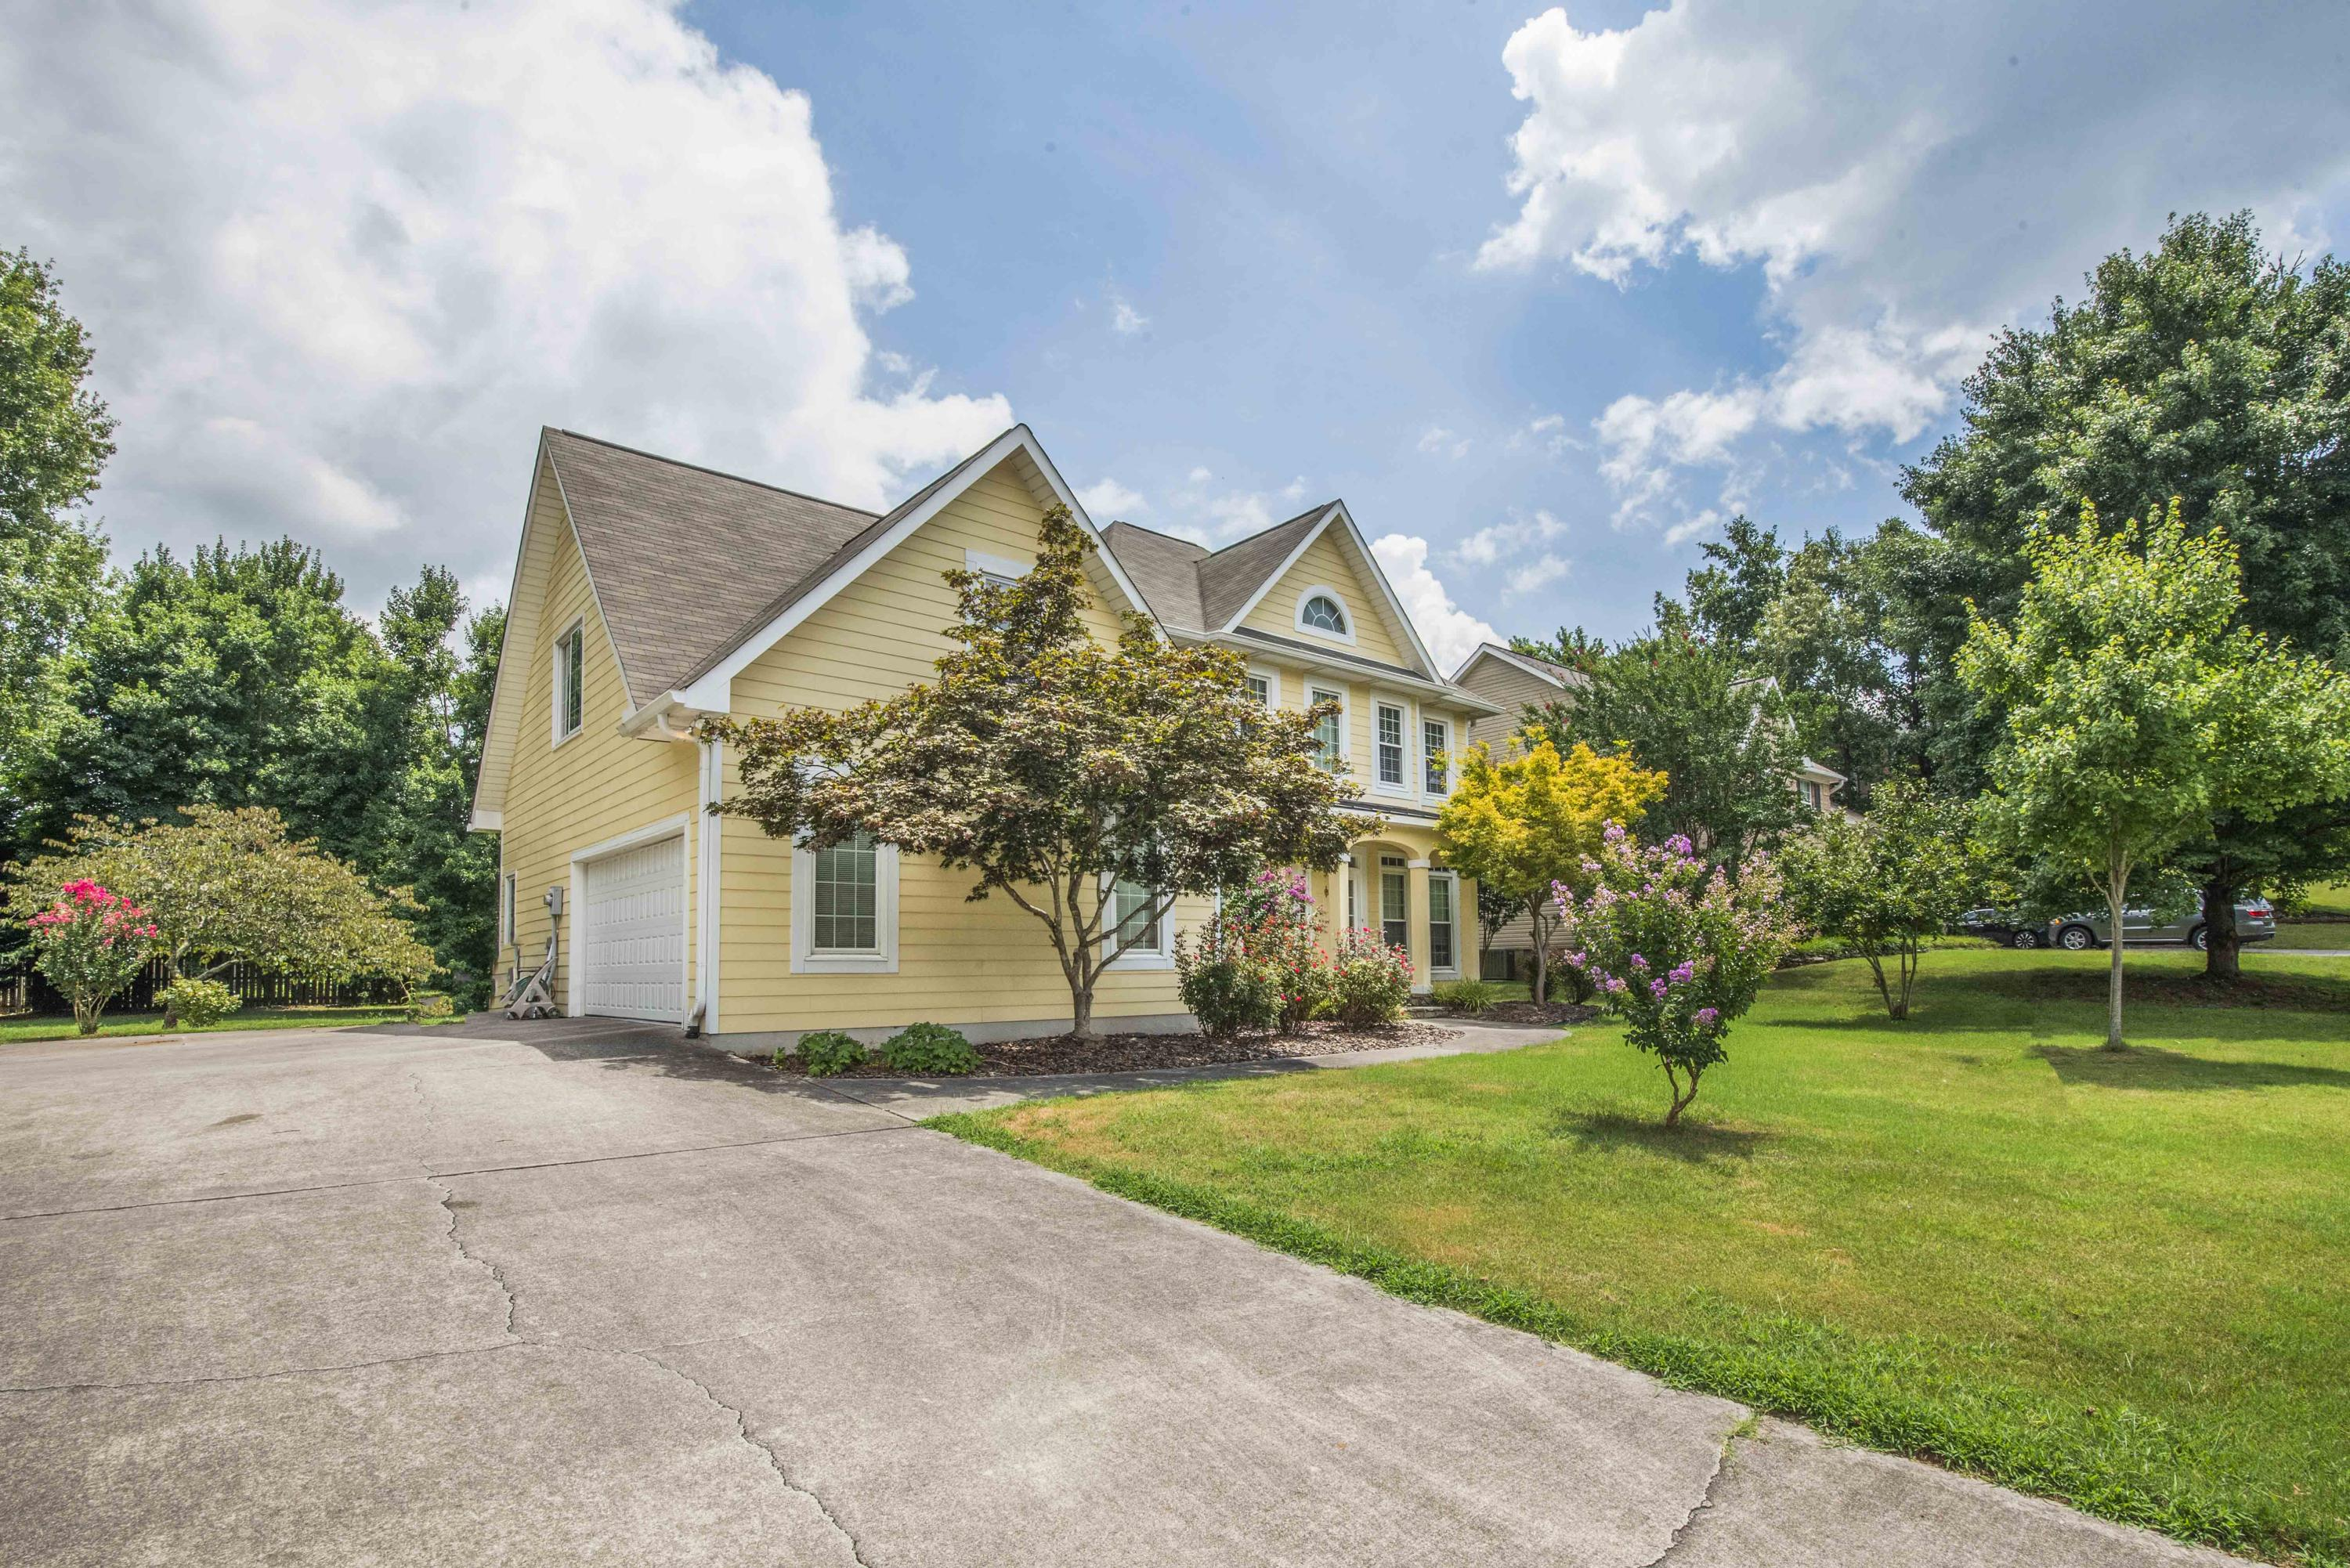 1712 Scenic Valley Lane, Knoxville, Tennessee 37922, 4 Bedrooms Bedrooms, ,3 BathroomsBathrooms,Single Family,For Sale,Scenic Valley,1087730